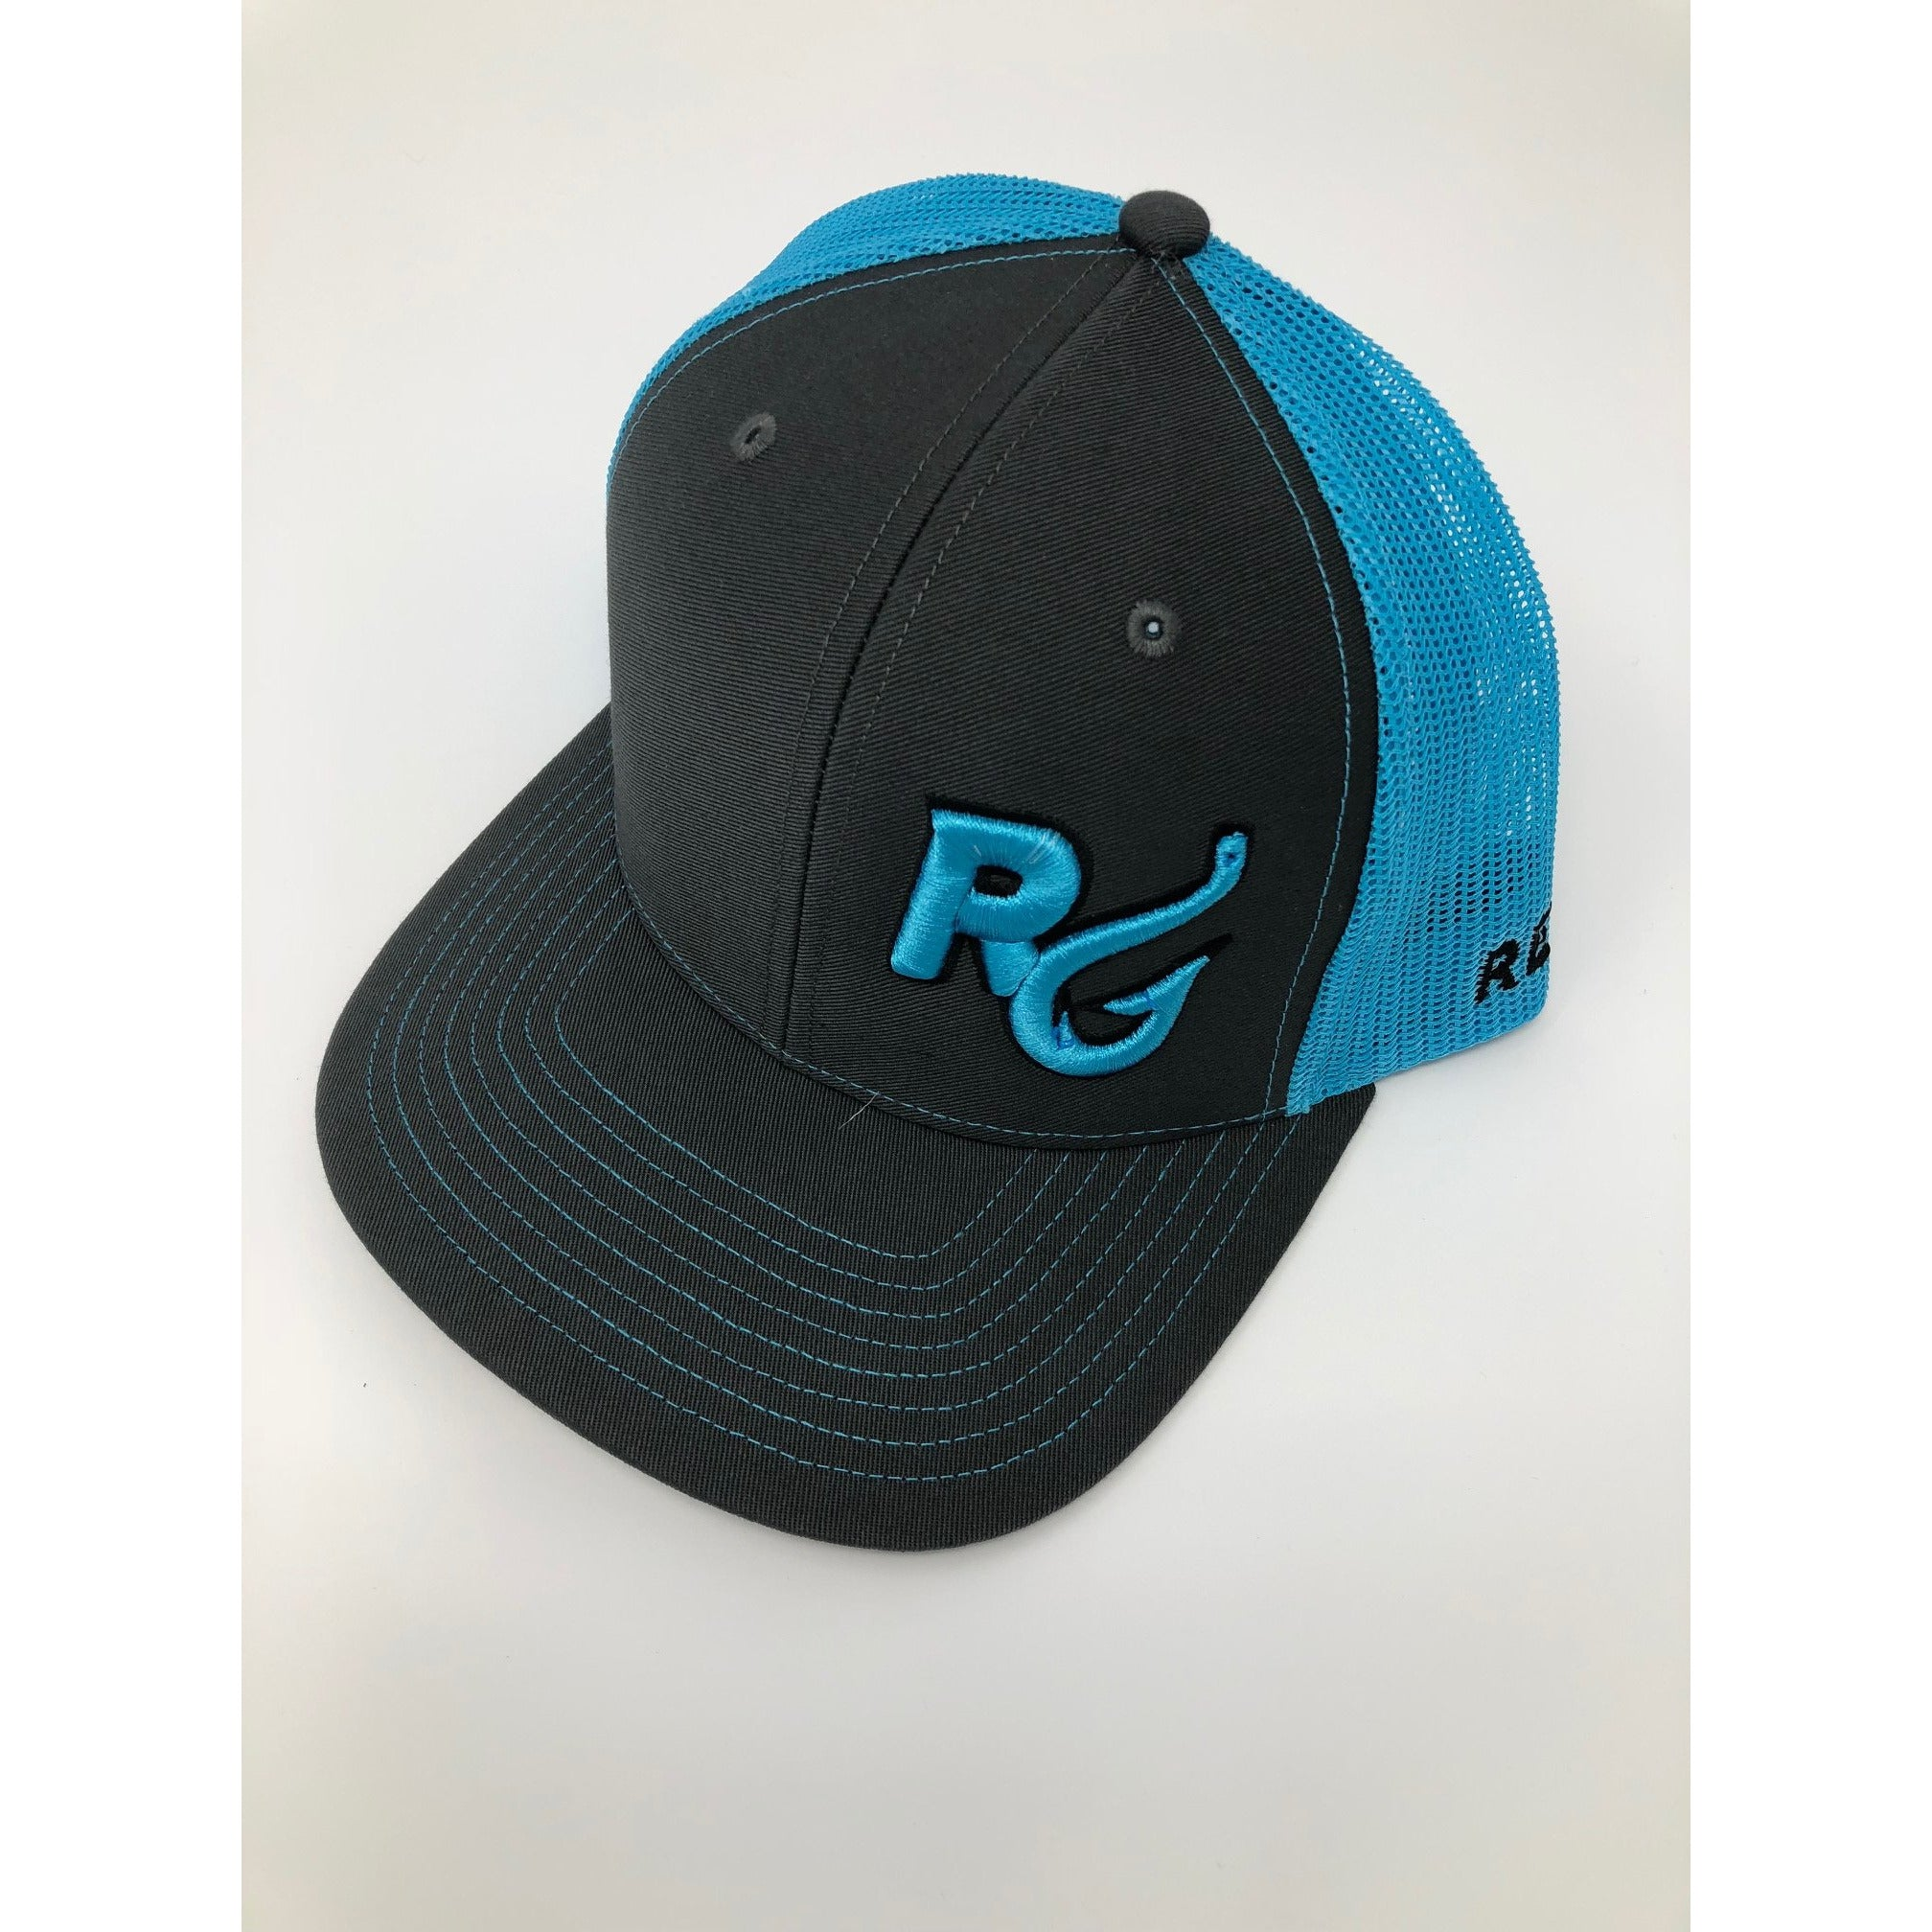 Reel Girls Classic Logo Adjustable Trucker Hat - Charcoal with Neon Blue